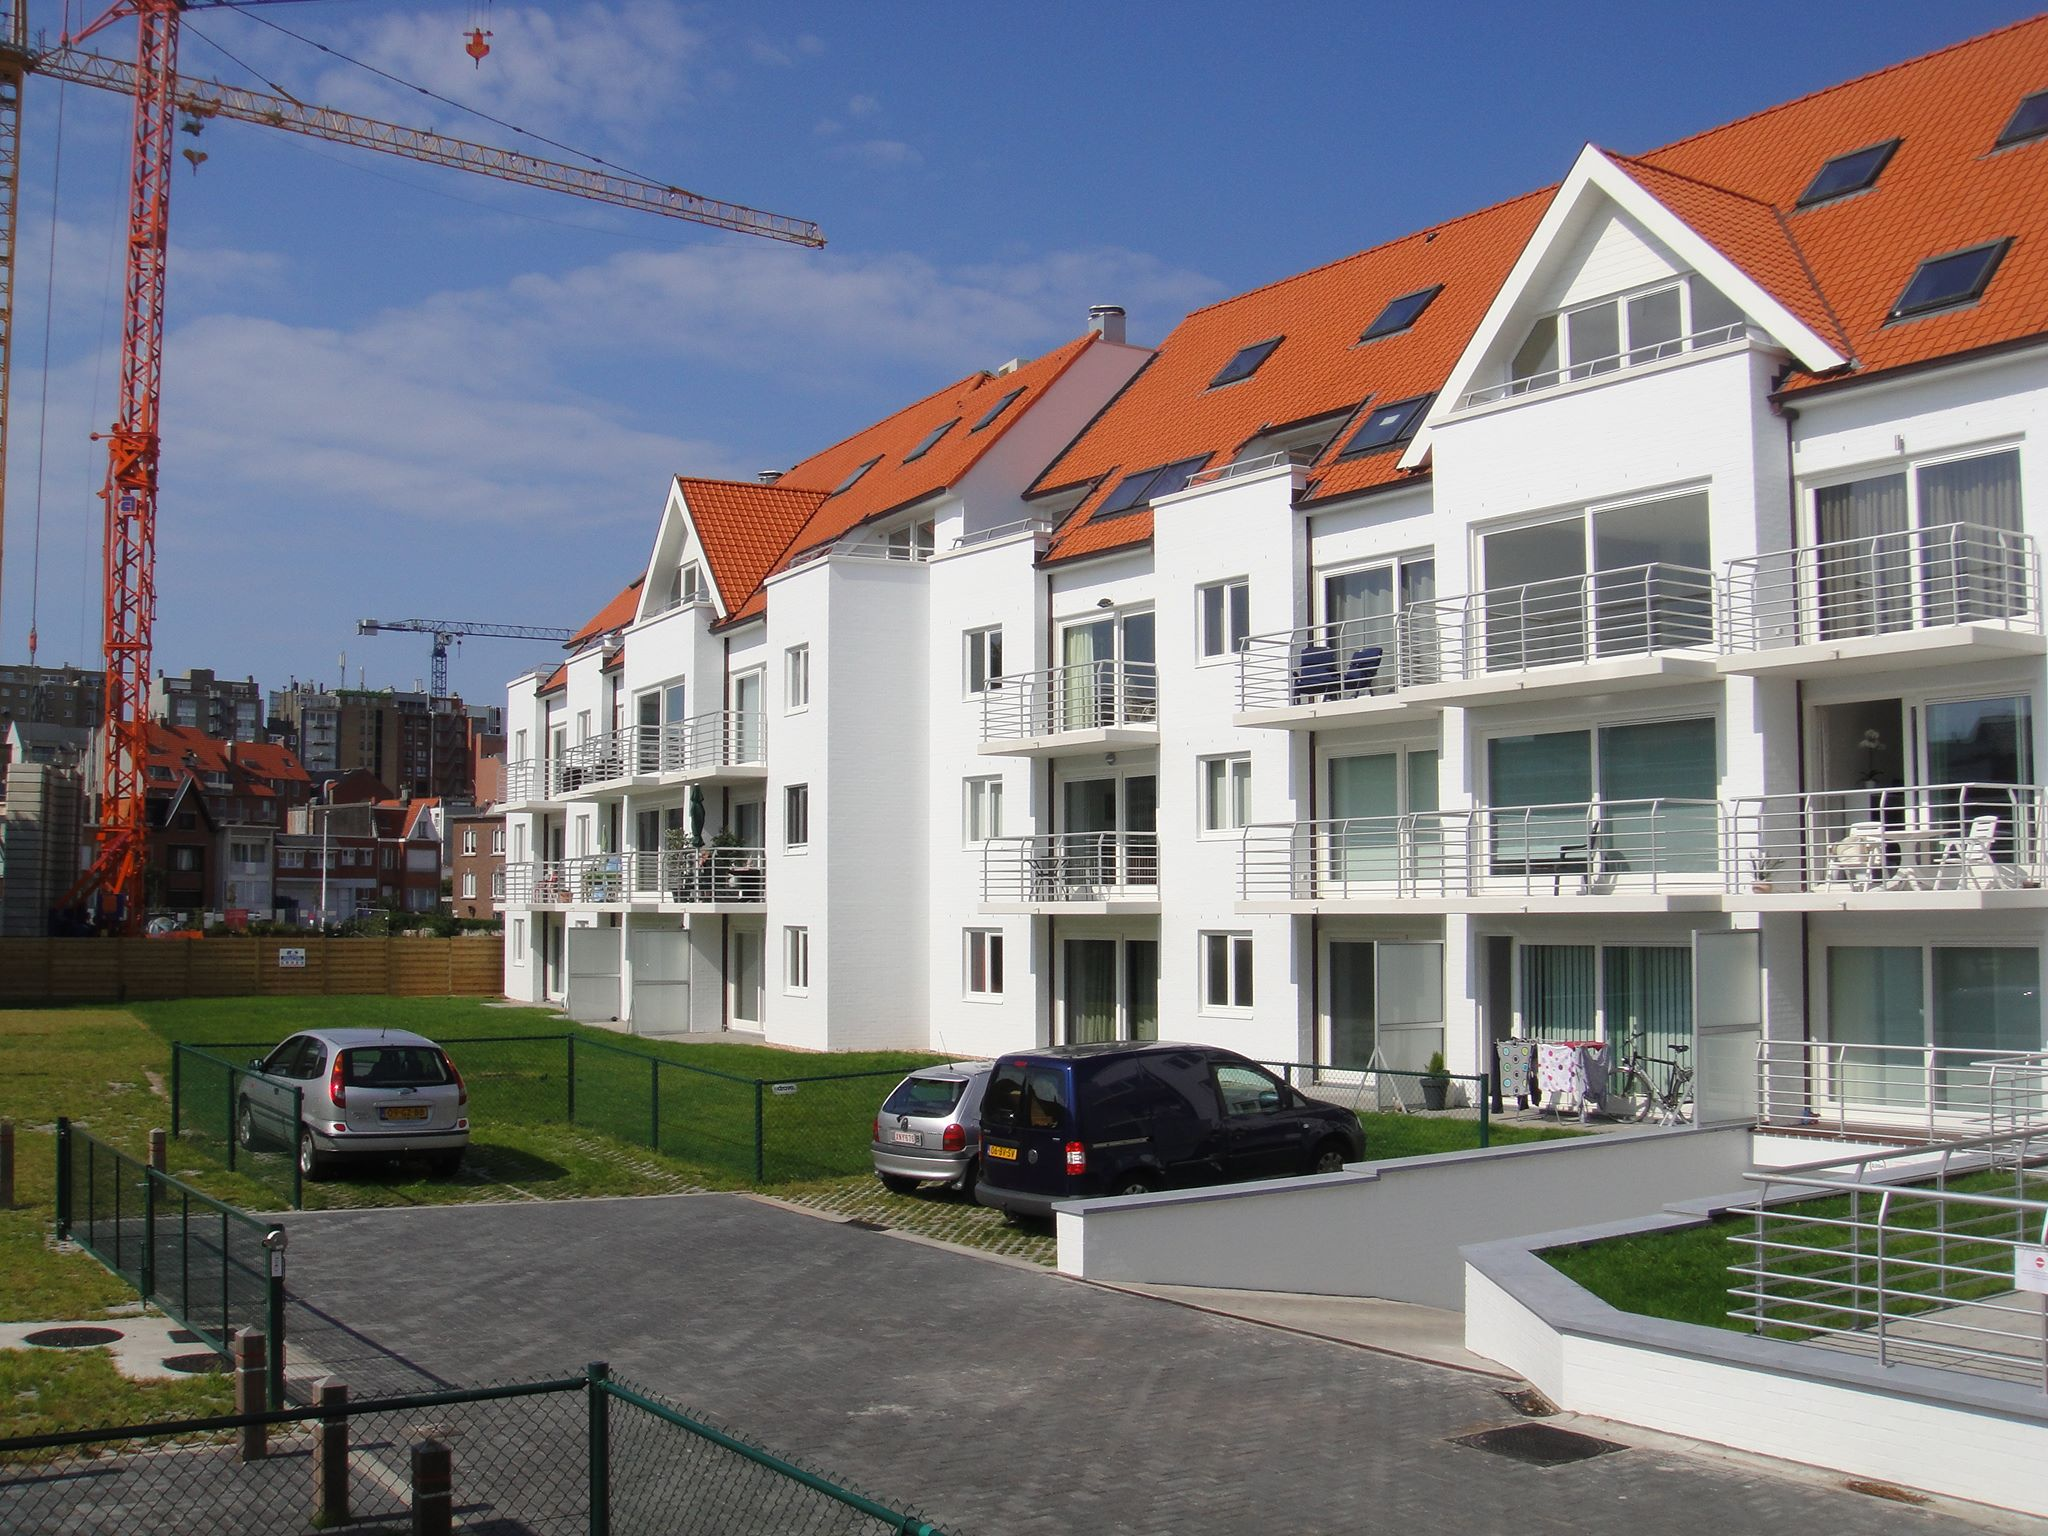 Chateau Residenties Oostende